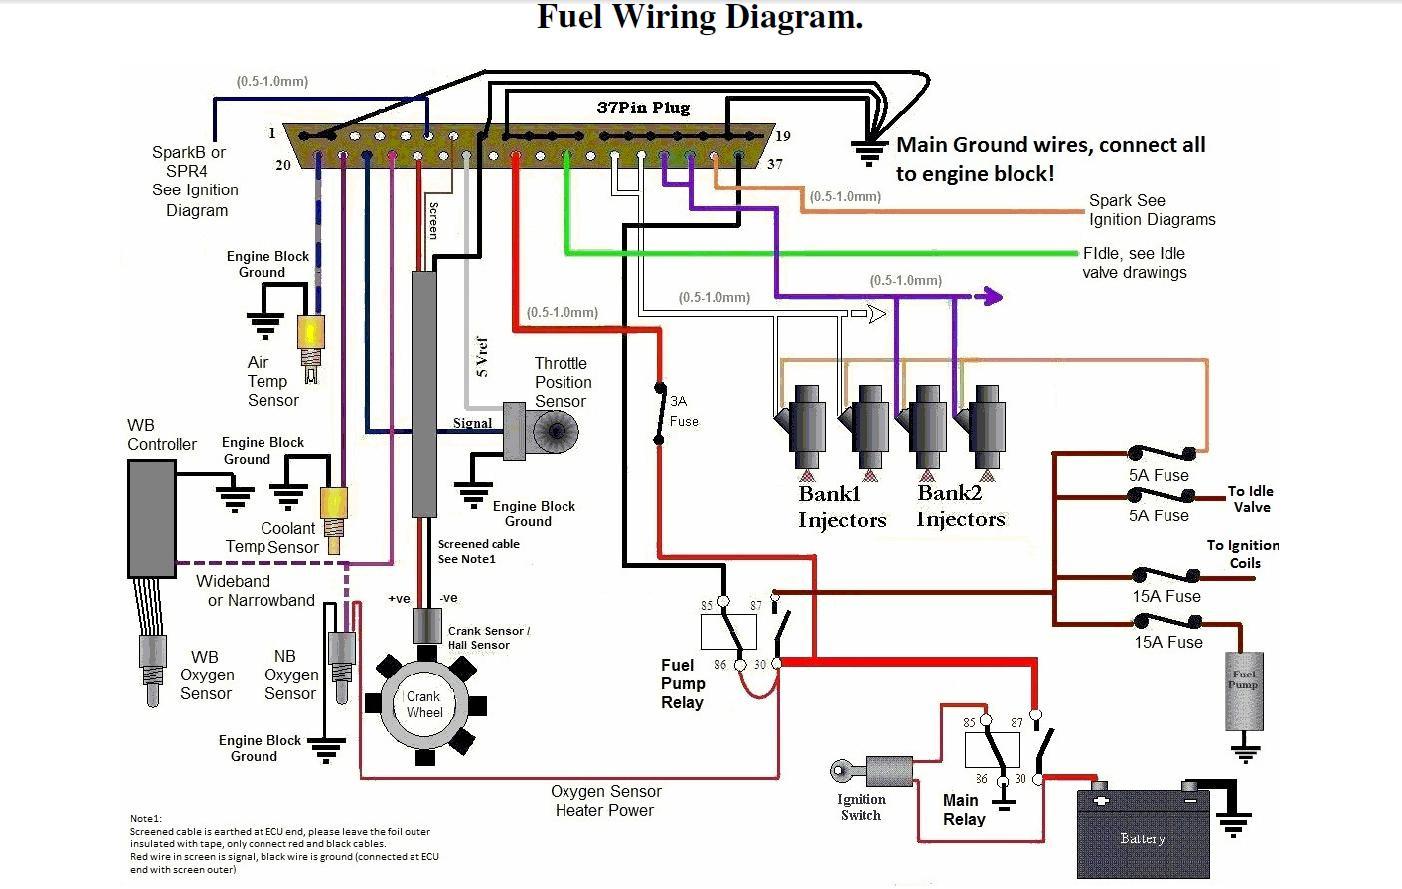 2011120821189964696MS_fuel f150 fuel pump wiring diagram f150 fuel pump wheels wiring diagram 1991 F150 Fuel Pump Wiring Diagram at bayanpartner.co